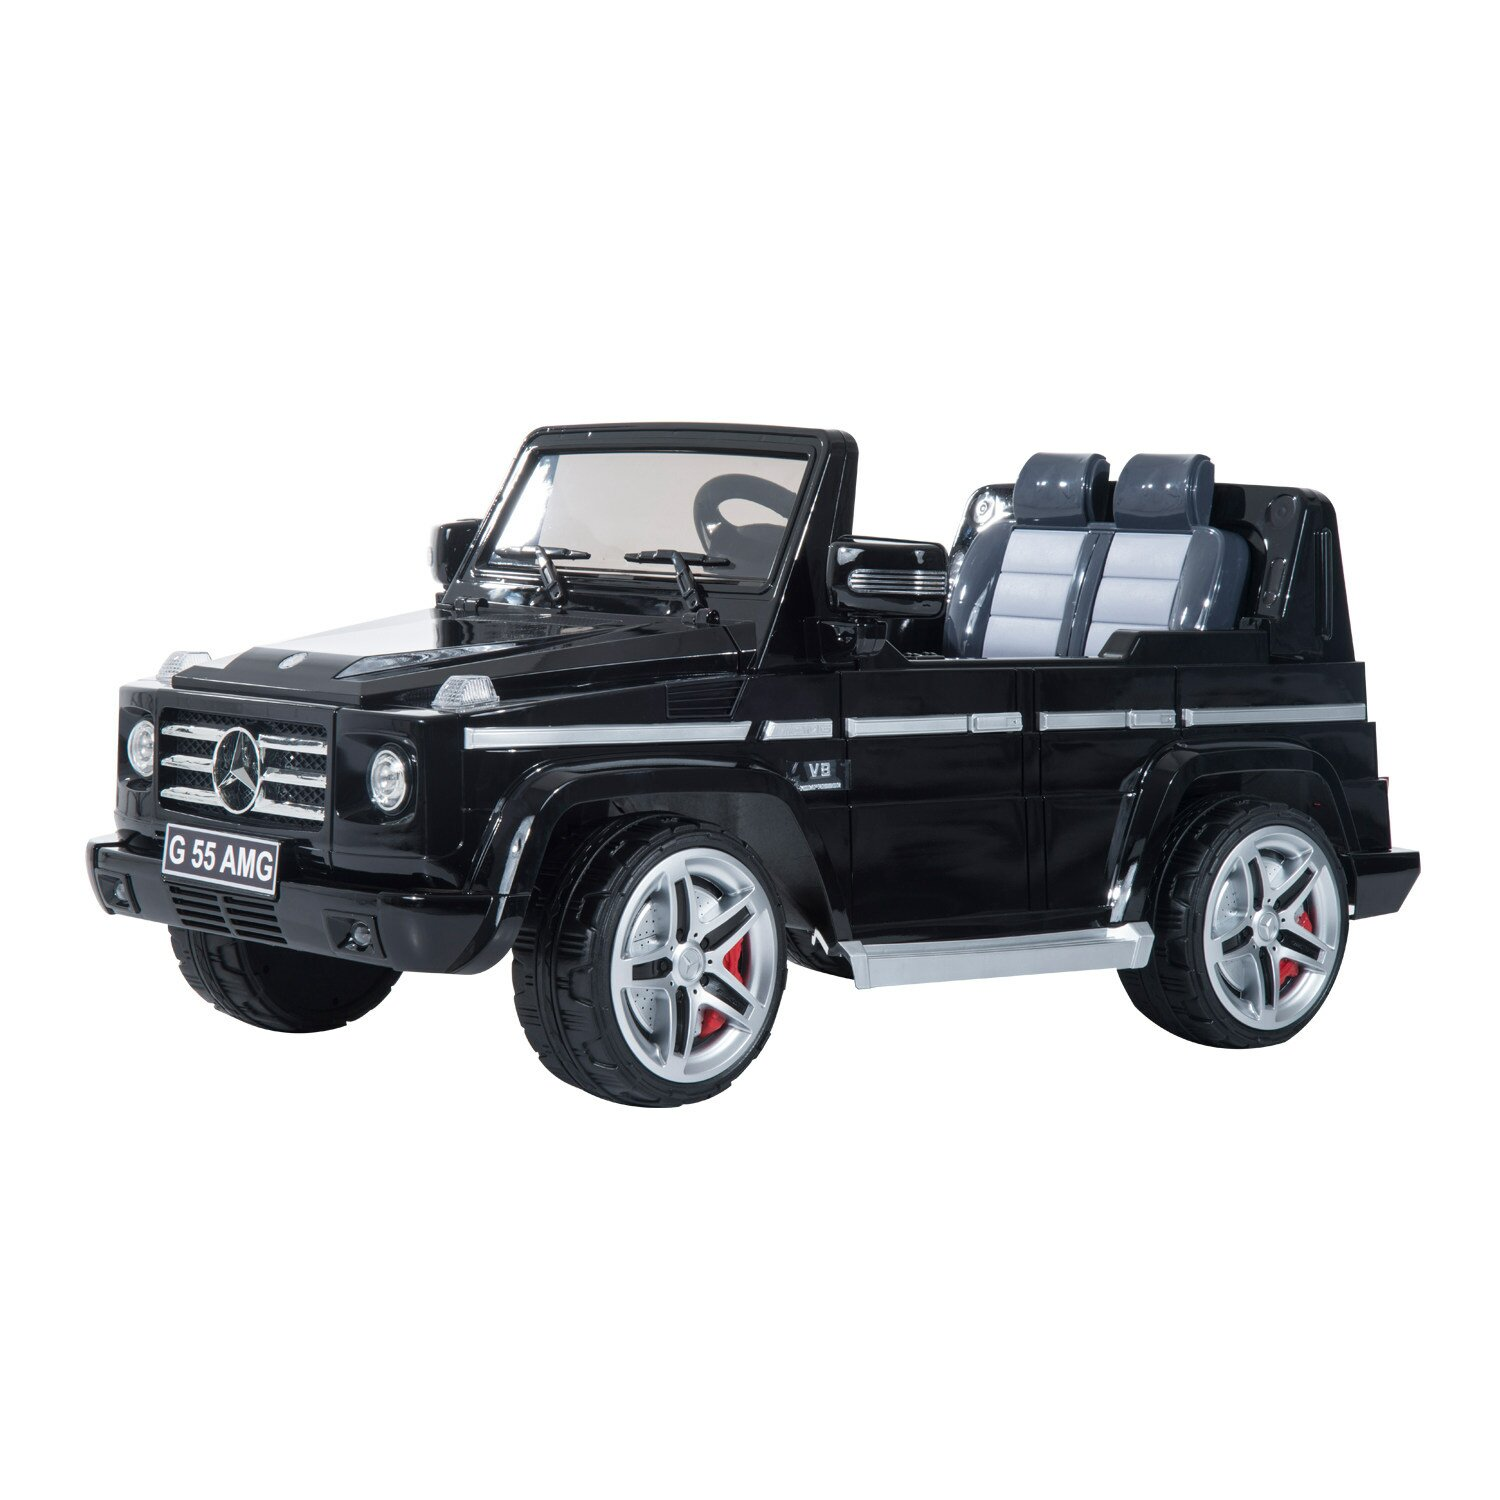 Qaba mercedes benz g55 kids 12v electric battery powered for Mercedes benz electric truck